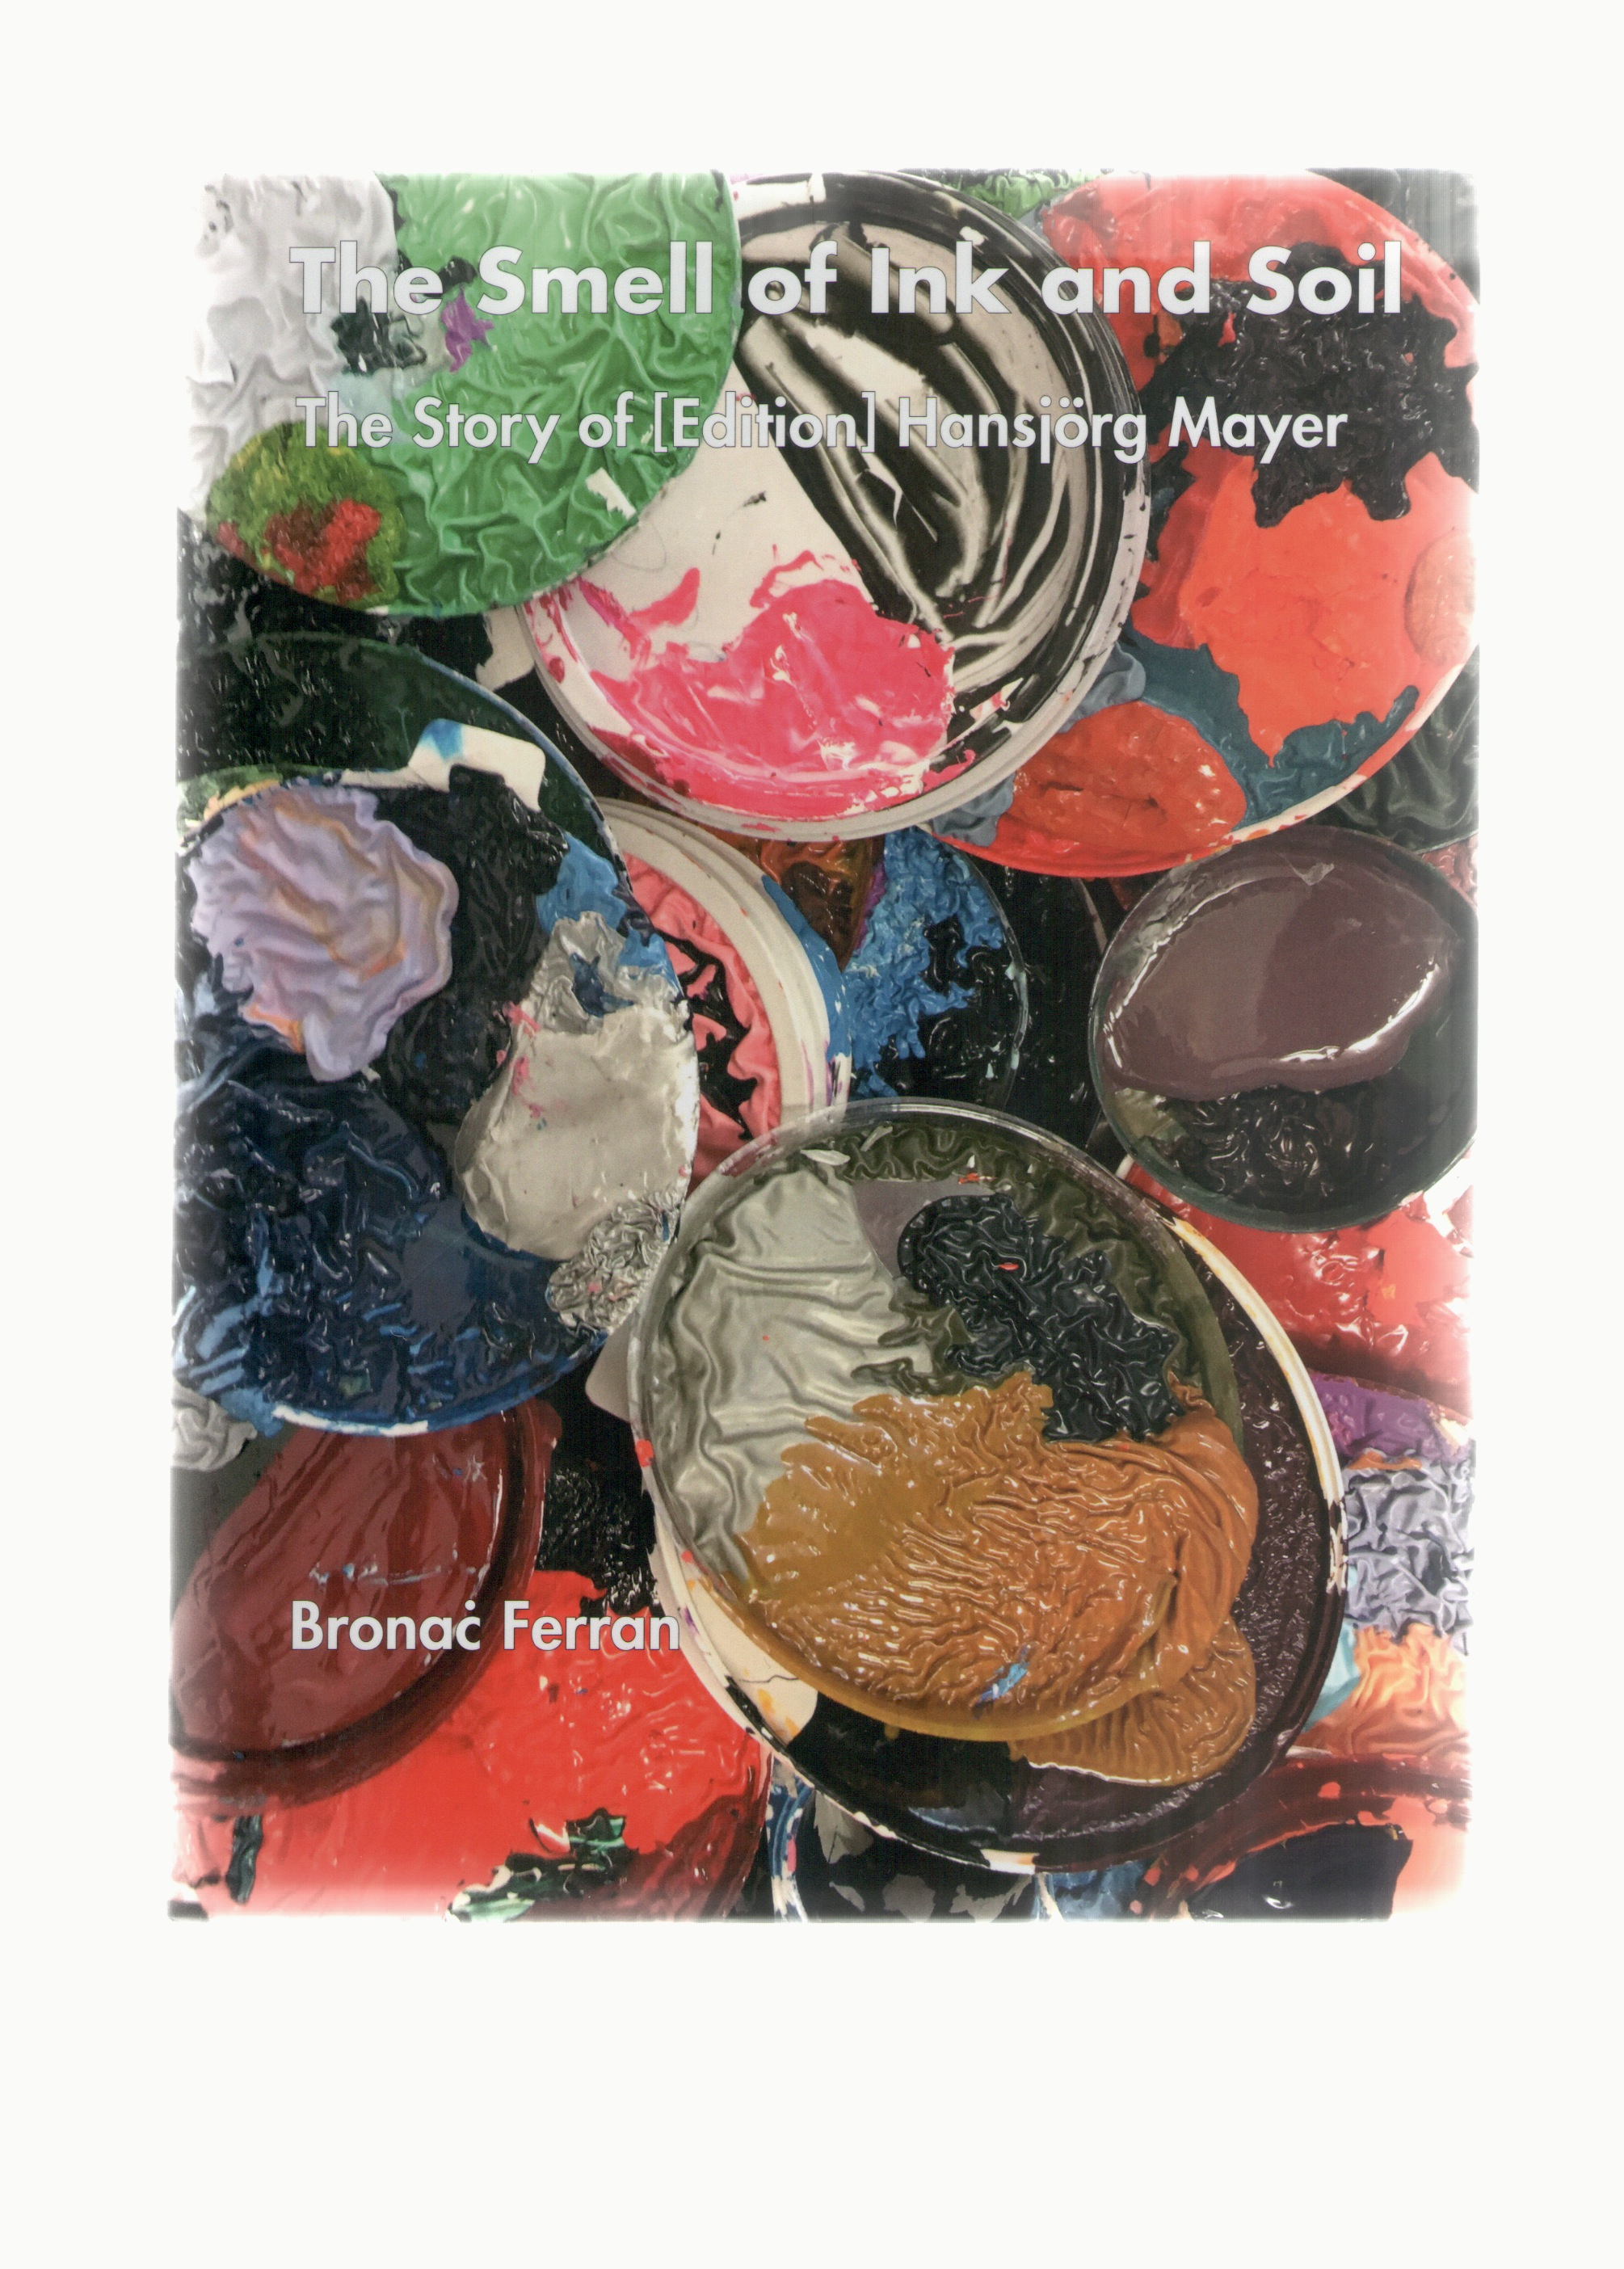 FERRAN, Bronac - The Smell of Ink and Soil. The Story of [Edition] Hansjörg Mayer